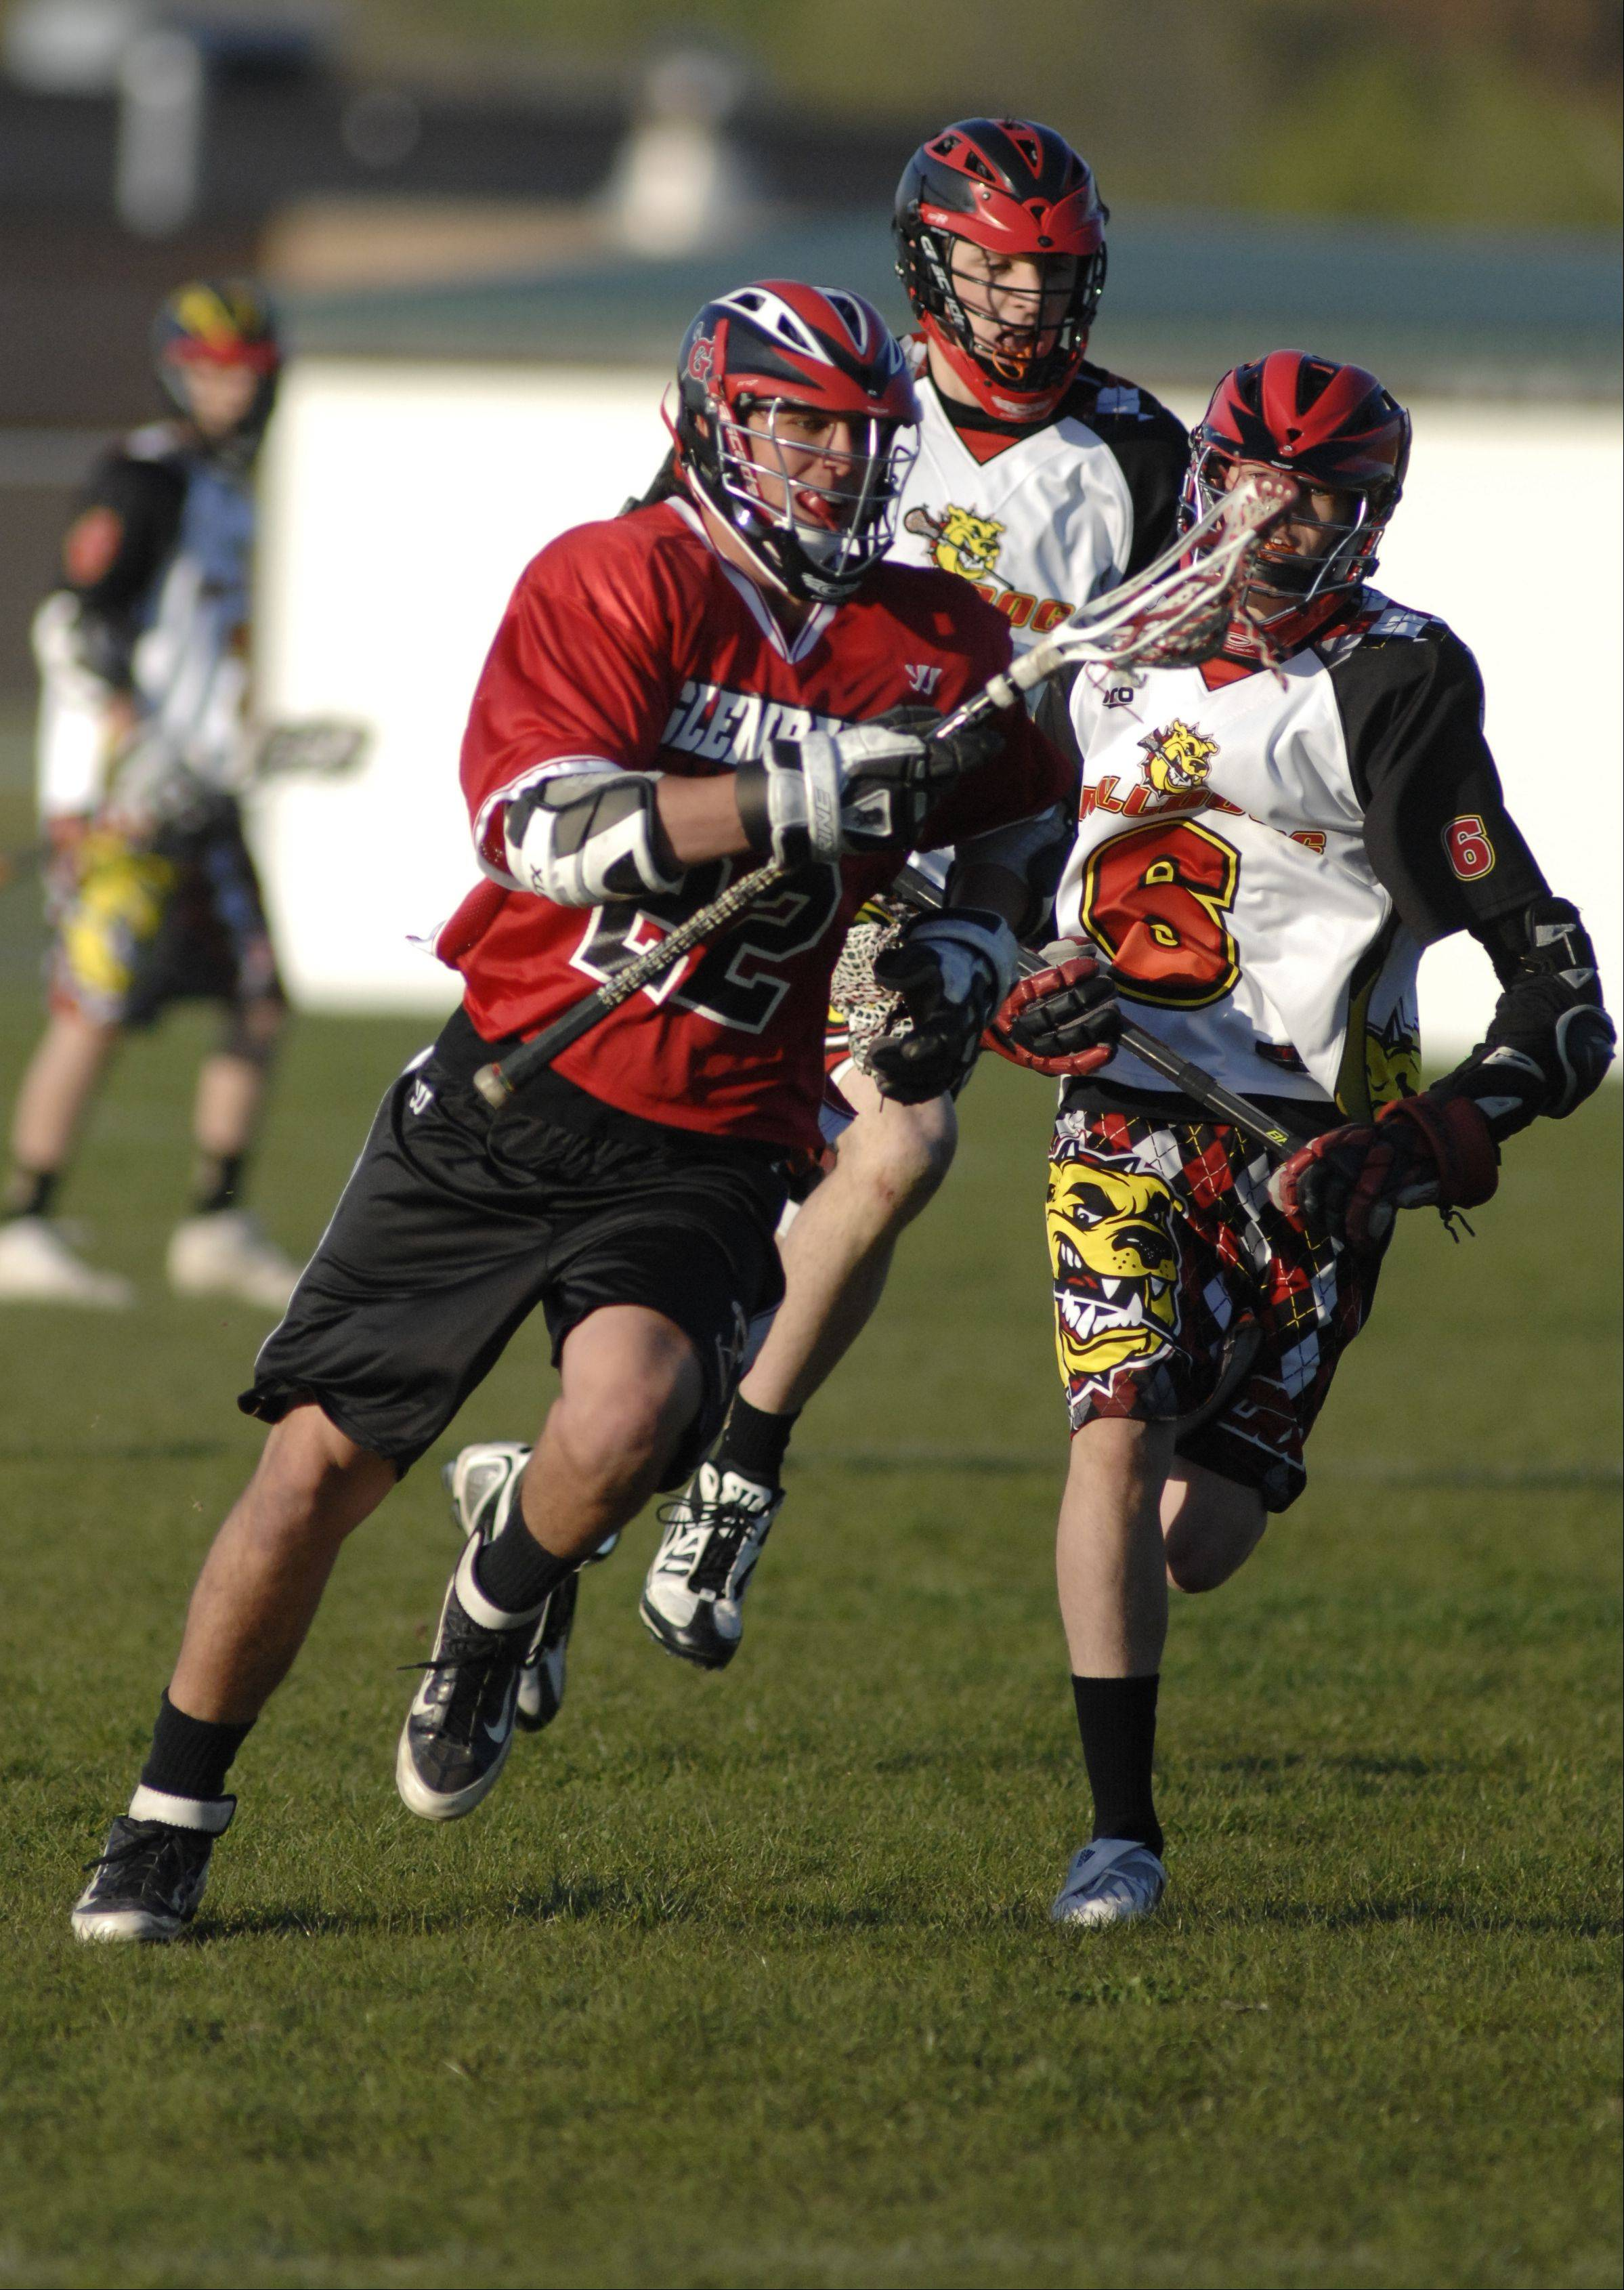 Images from the Batavia vs. Glenbard boys lacrosse match Wednesday, April 11, 2012.